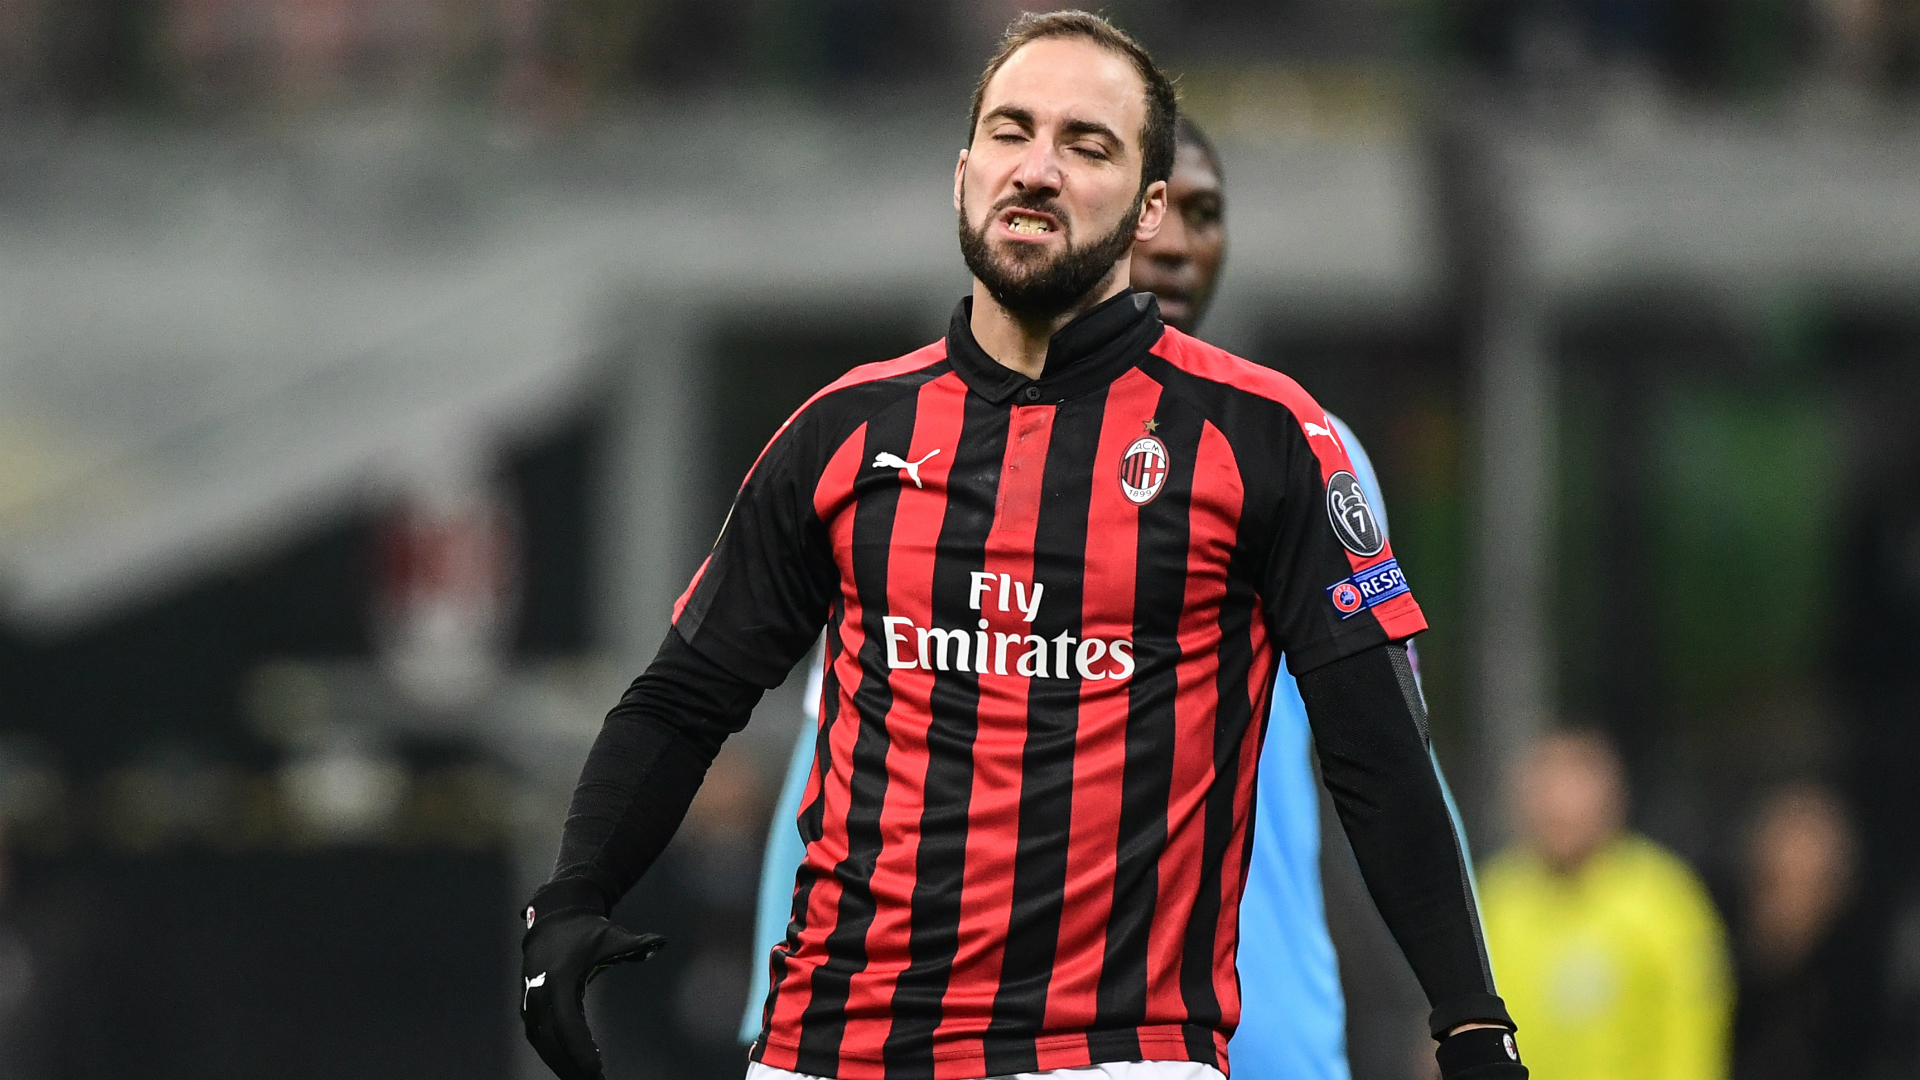 Chelsea make a move for Juventus striker Gonzalo Higuain